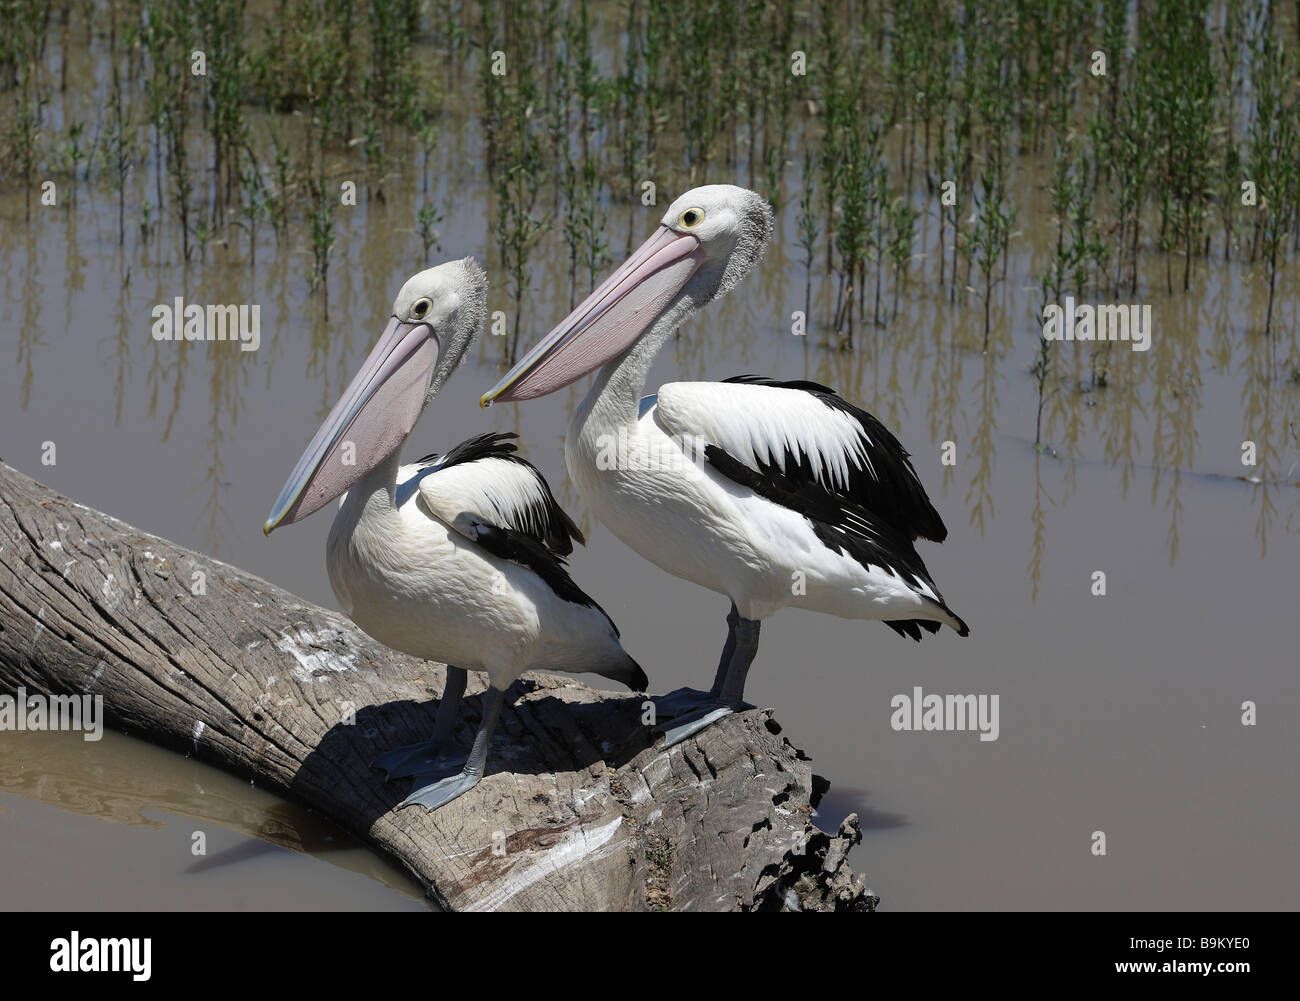 Two pelicans sitting on a tree log in water,Gippsland, Victoria, Australia - Stock Image